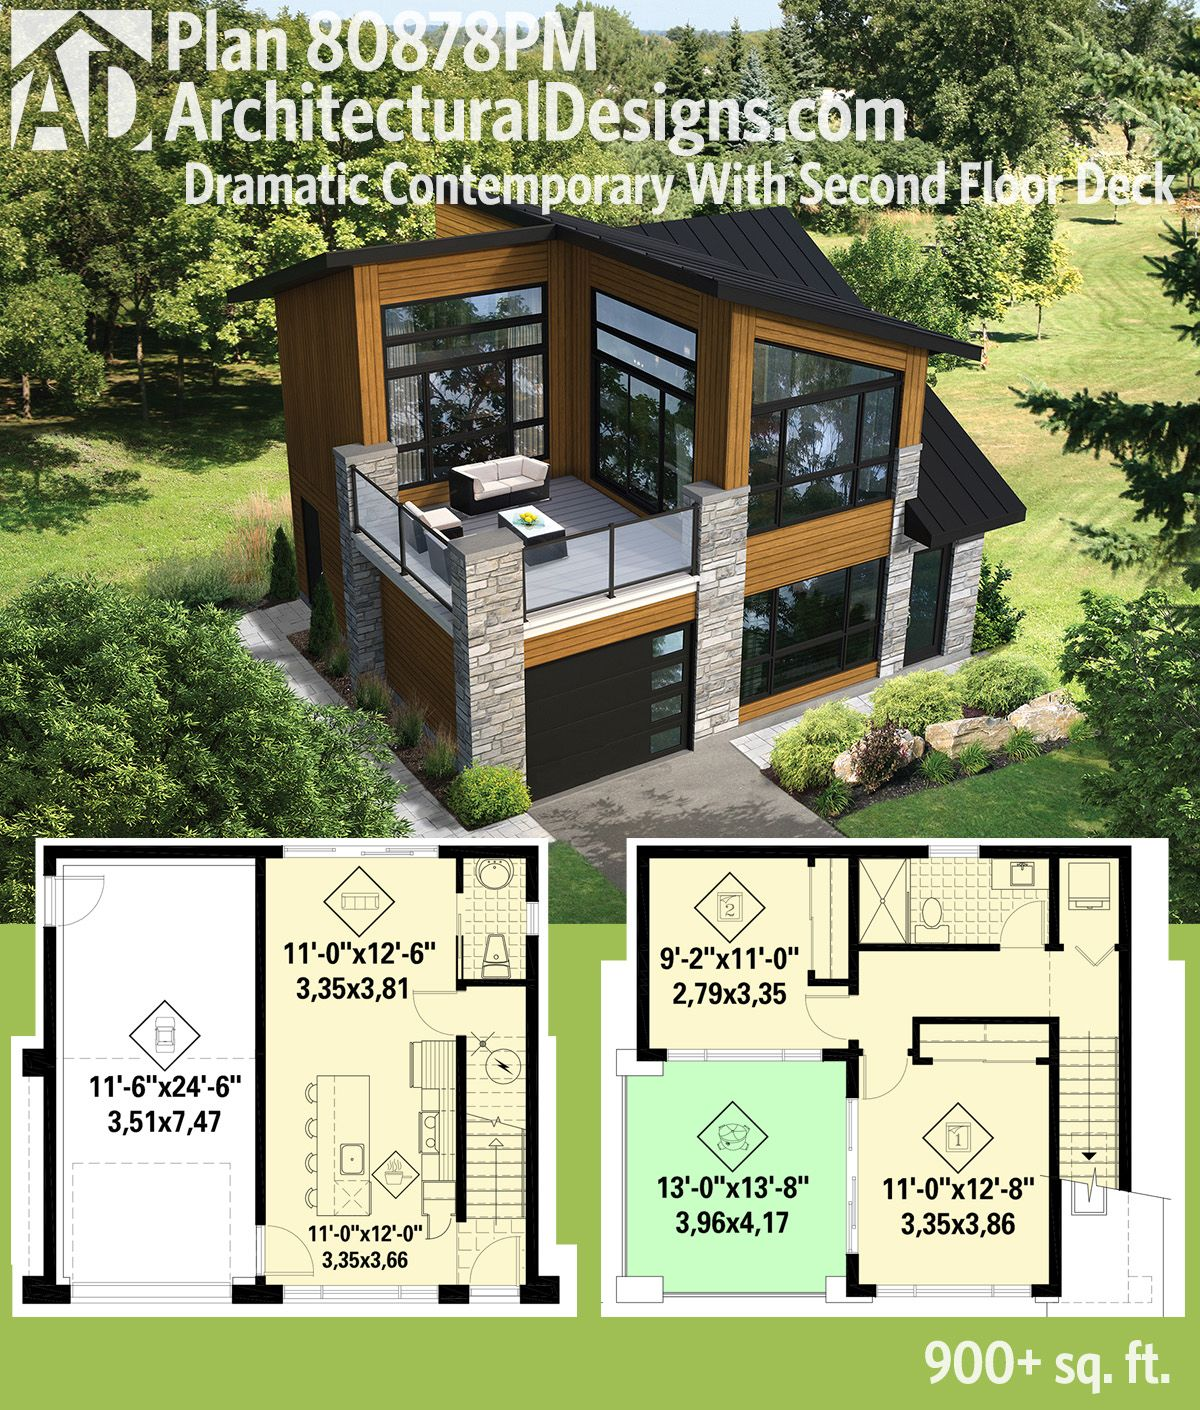 Plan 80878pm dramatic contemporary with second floor deck for Contemporary tiny house